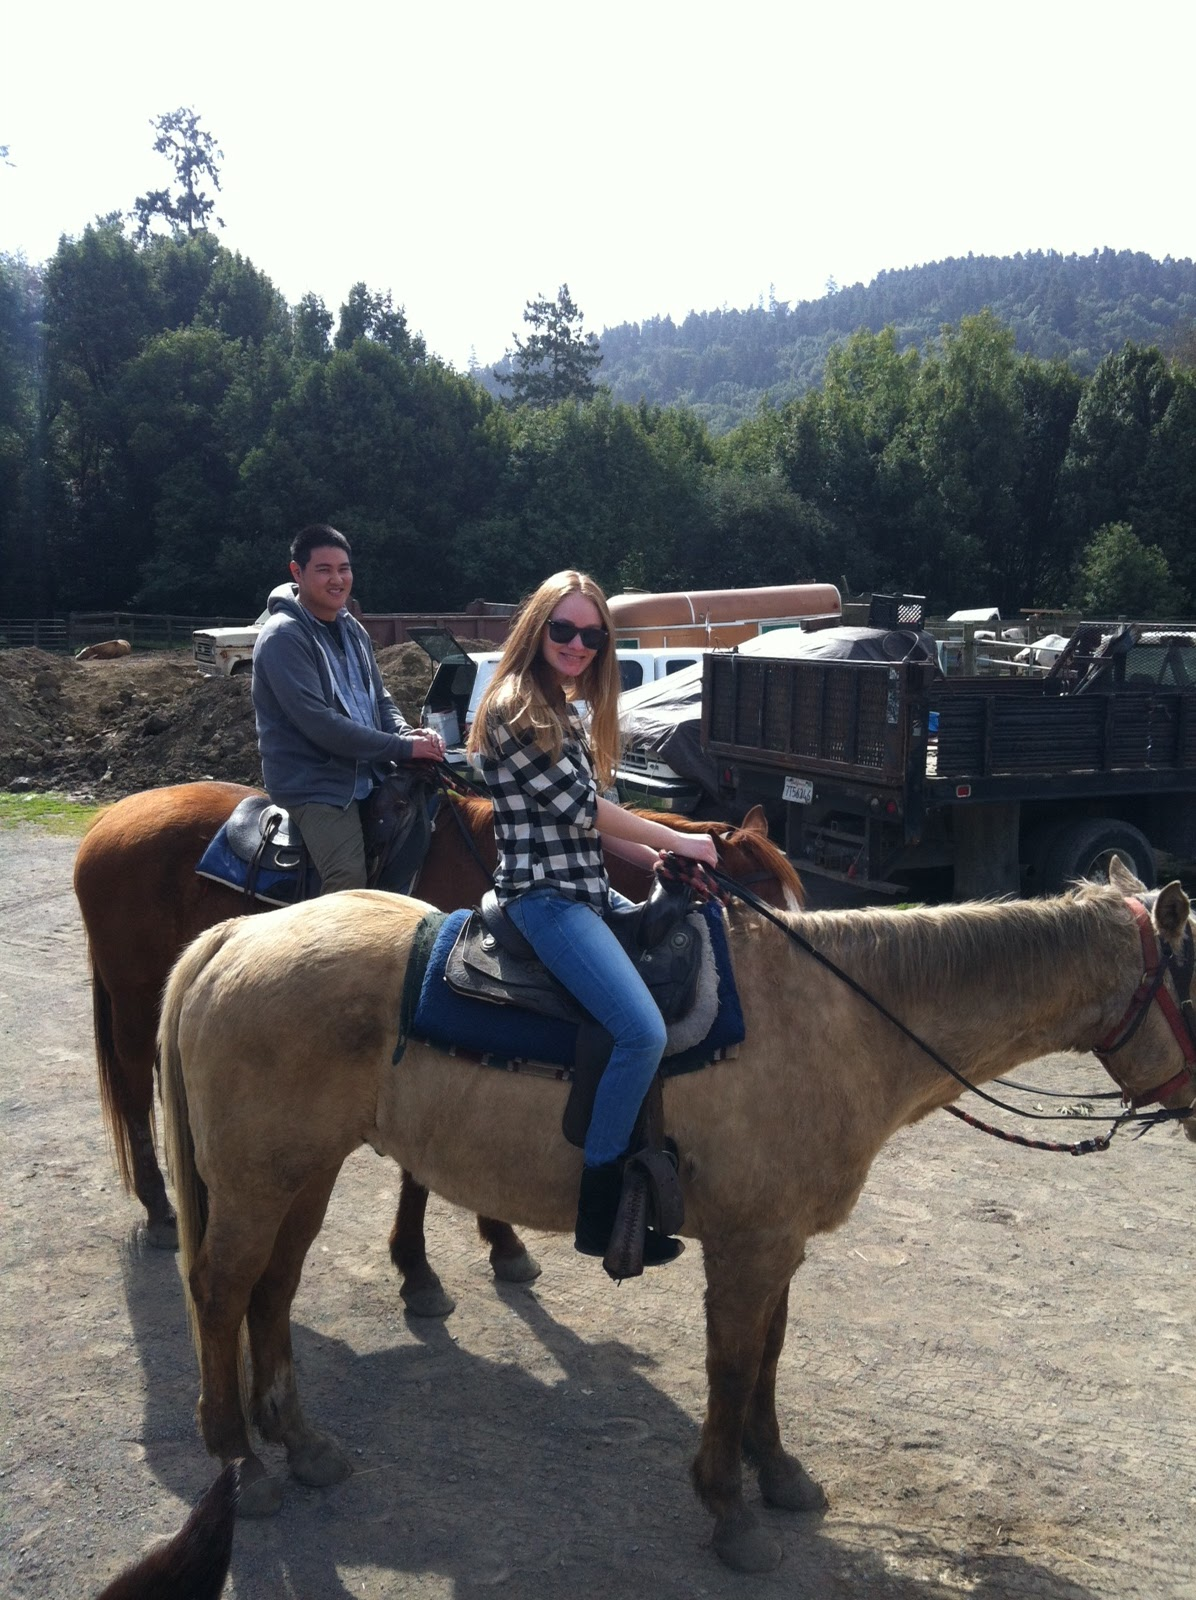 Me & my horse, Hank at Five Brooks Stables